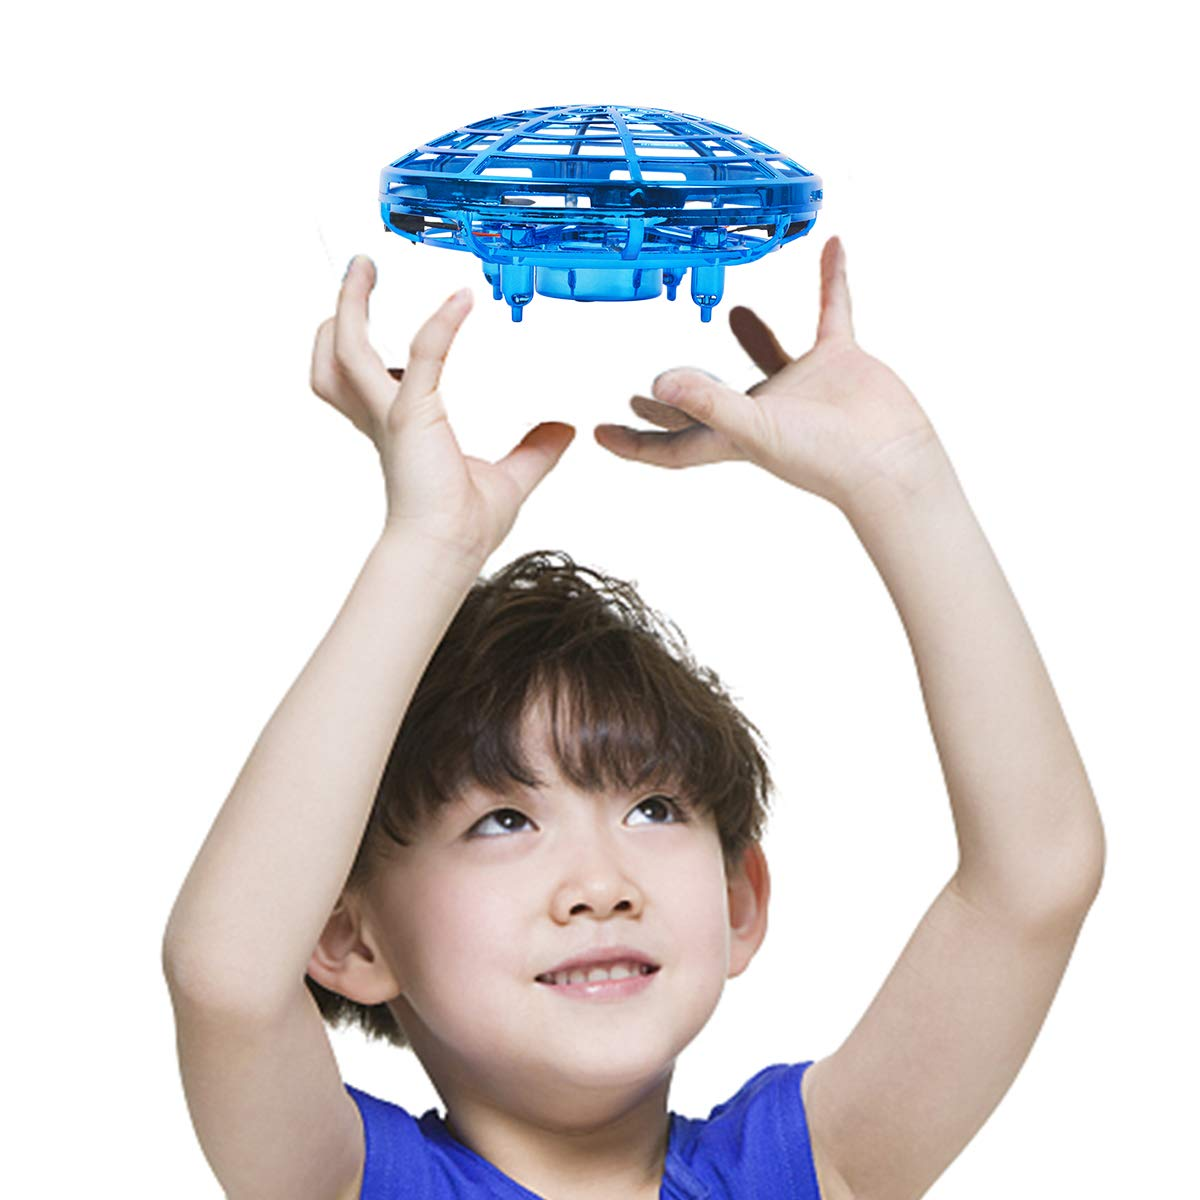 Oucles Mini Drones for Kids and Adults Ball with 360° Rotating and Shinning LED Lights, Flying Toy for Boys Girls and Kids Gifts by Oucles (Image #1)